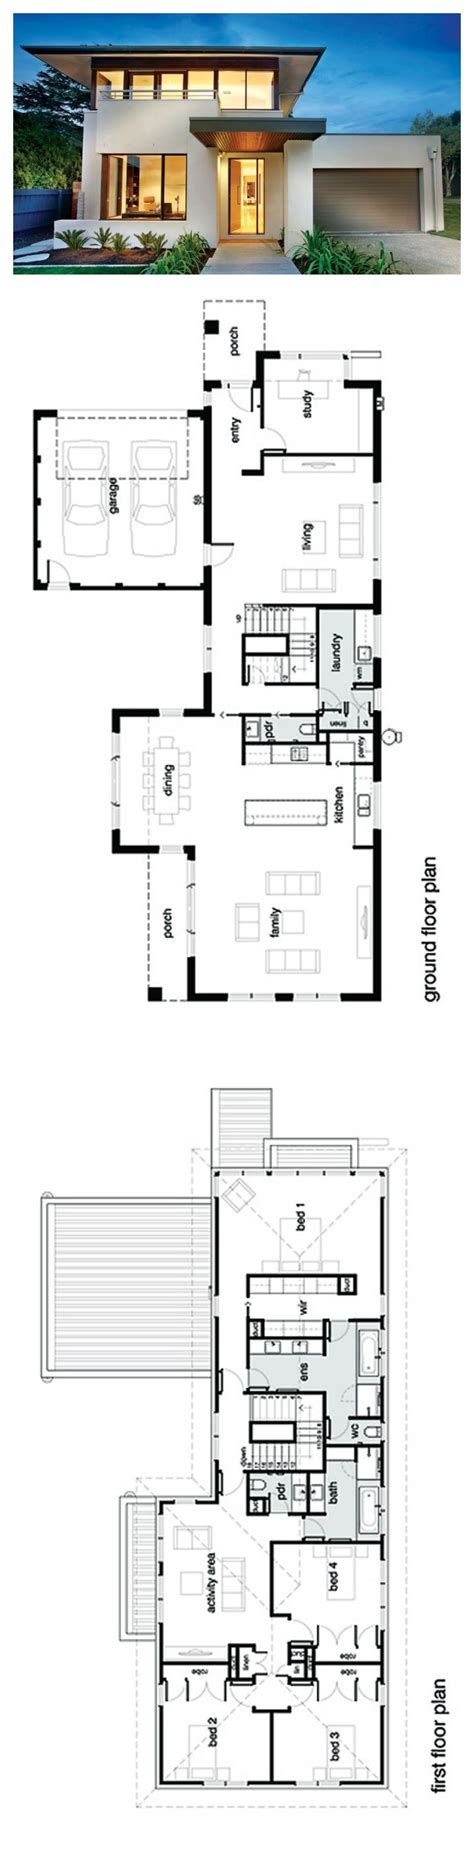 home design layout best 25 modern house plans ideas on pinterest modern